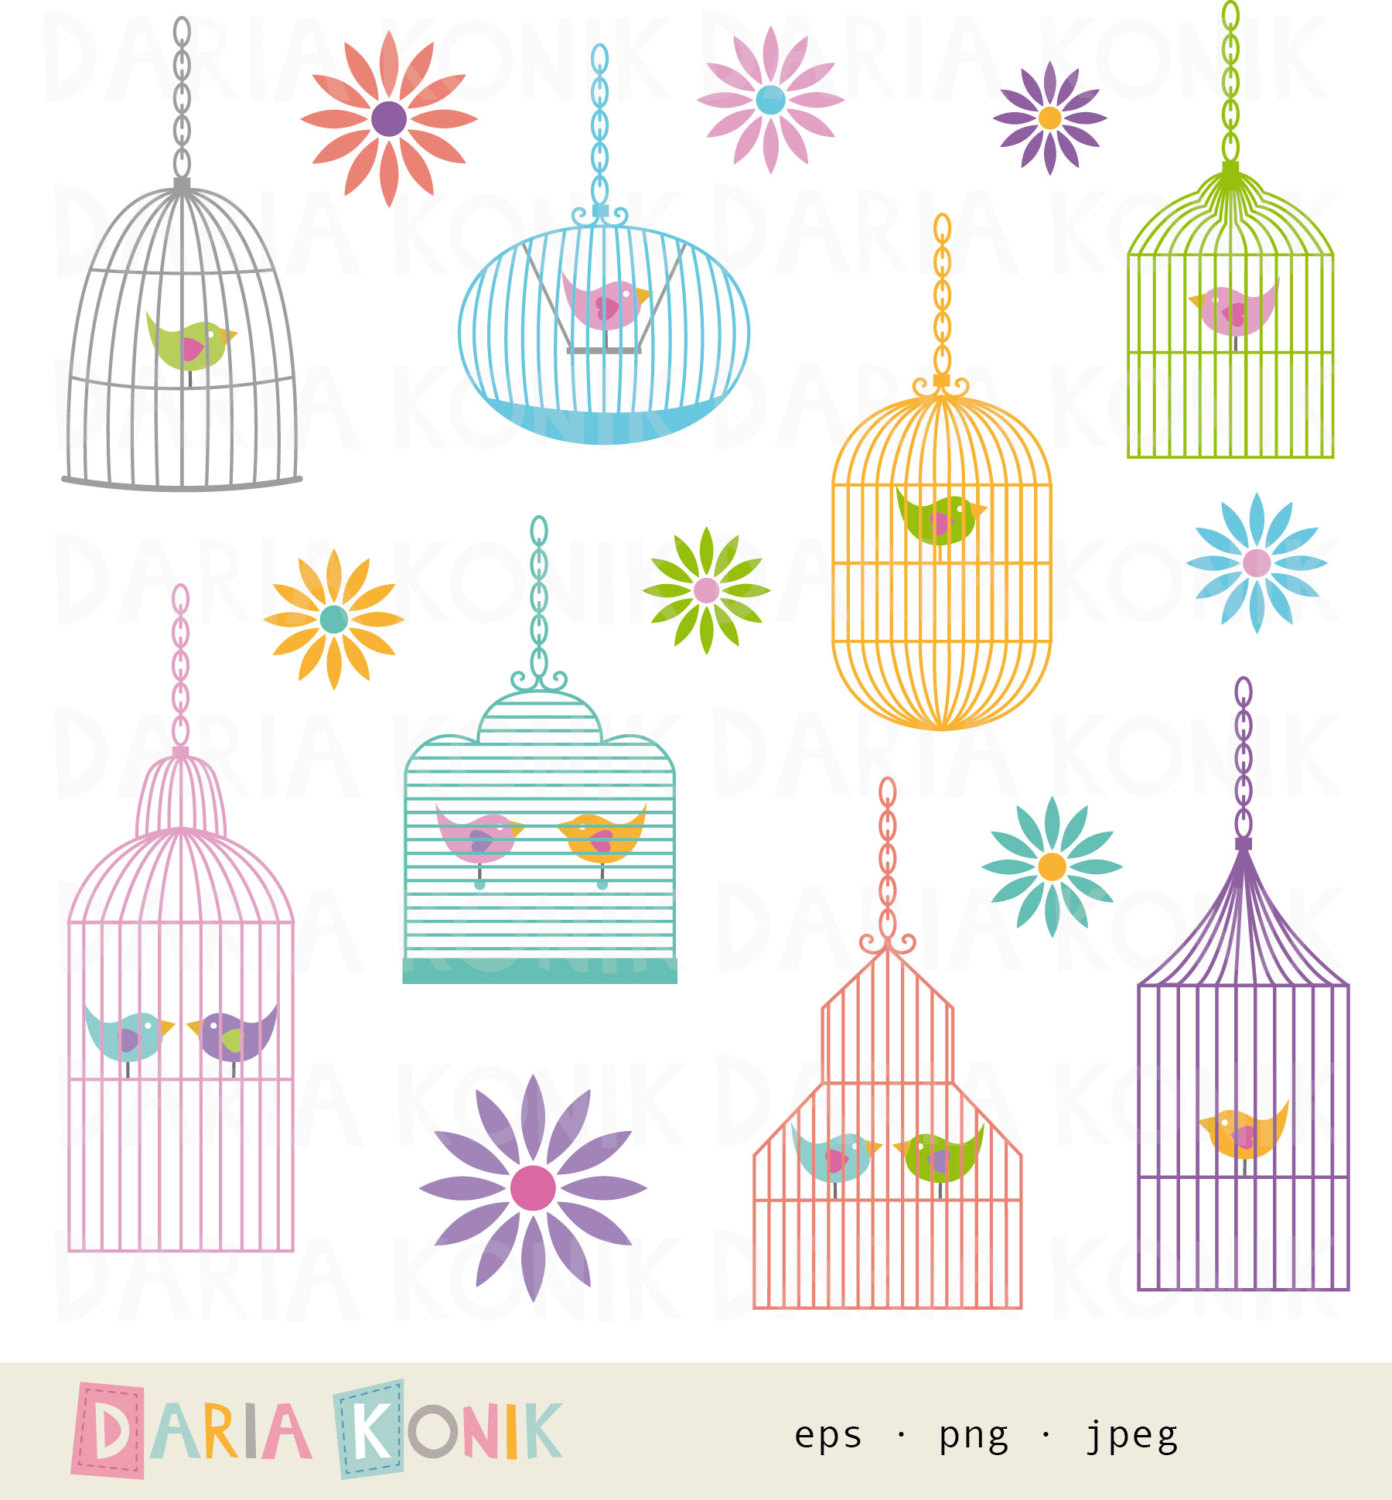 Birdcage clipart cute This birdcages cages Like Art